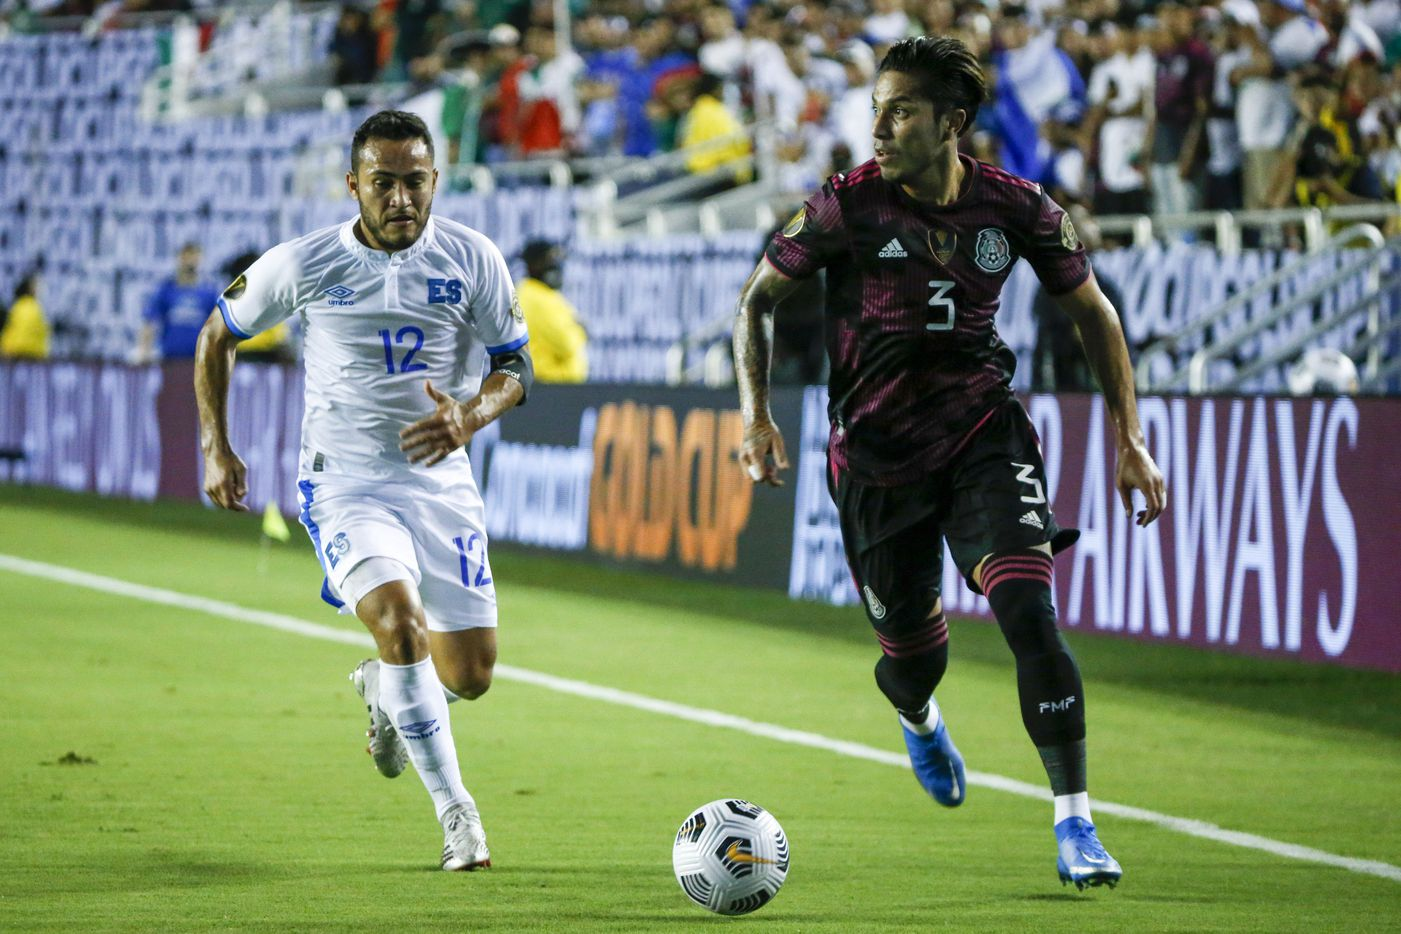 Mexico defender Carlos Salcedo (3) dribbles the ball ahead of El Salvador midfielder Marvin Monterroza (12) during the first half of a CONCACAF Gold Cup Group A soccer match at the Cotton Bowl on Sunday, July 18, 2021, in Dallas. (Elias Valverde II/The Dallas Morning News)